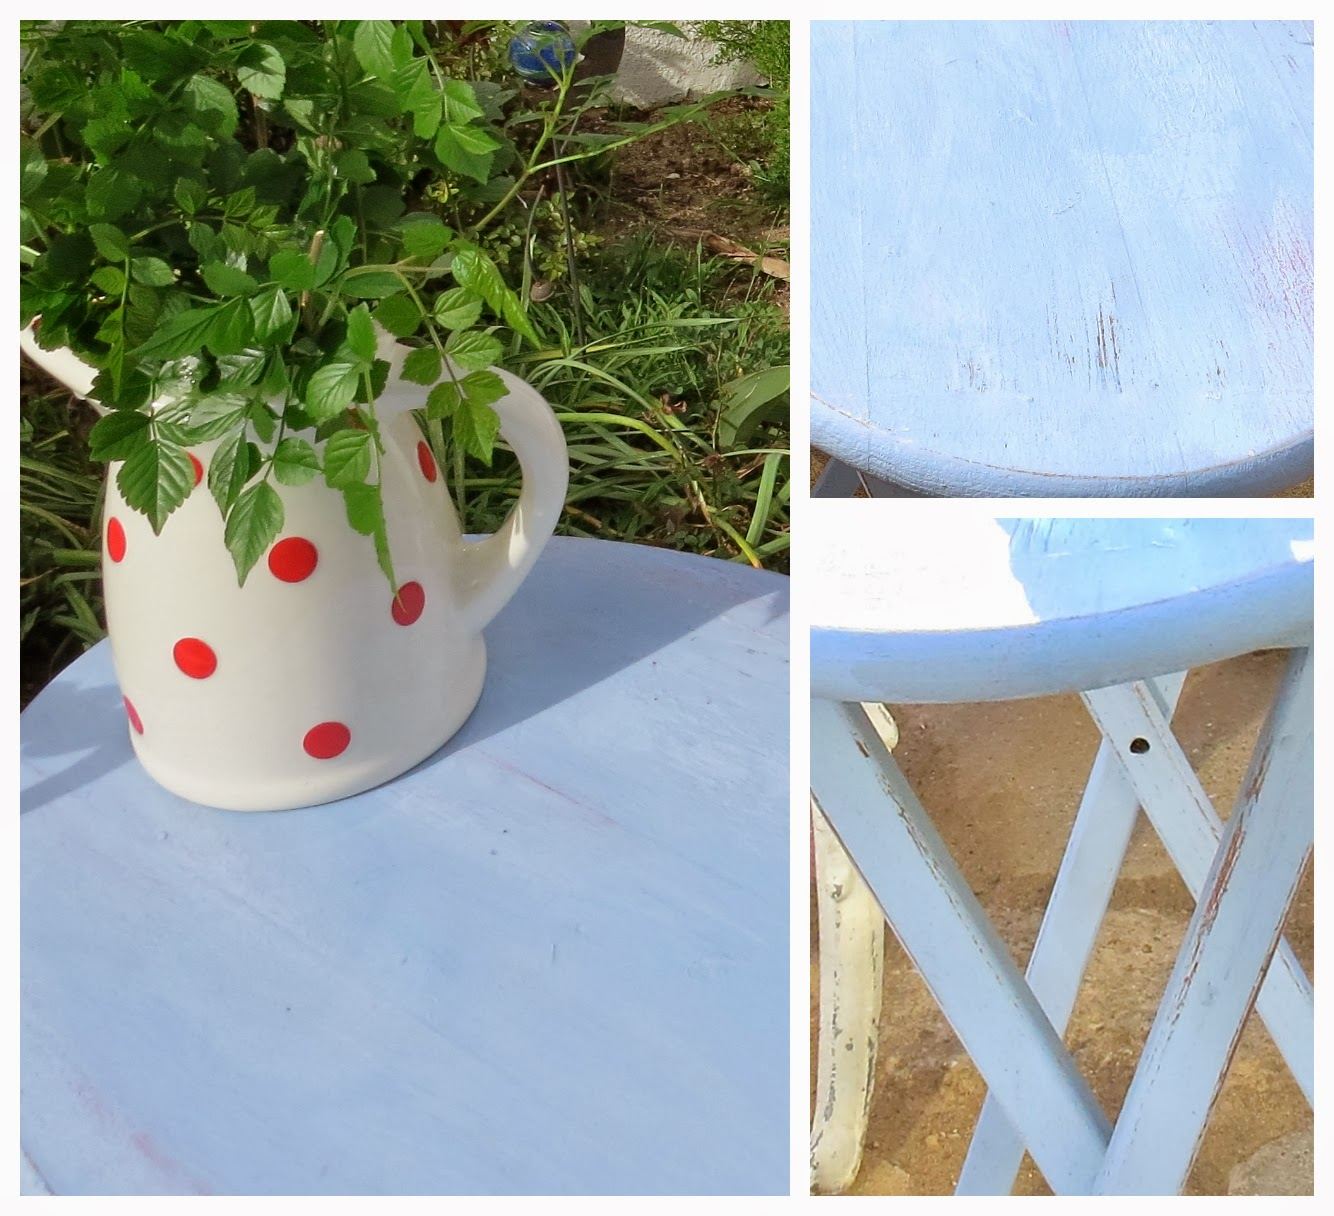 Folding Chair Lulu Pillow For Bed Art And Sand A Small Change In The Garden